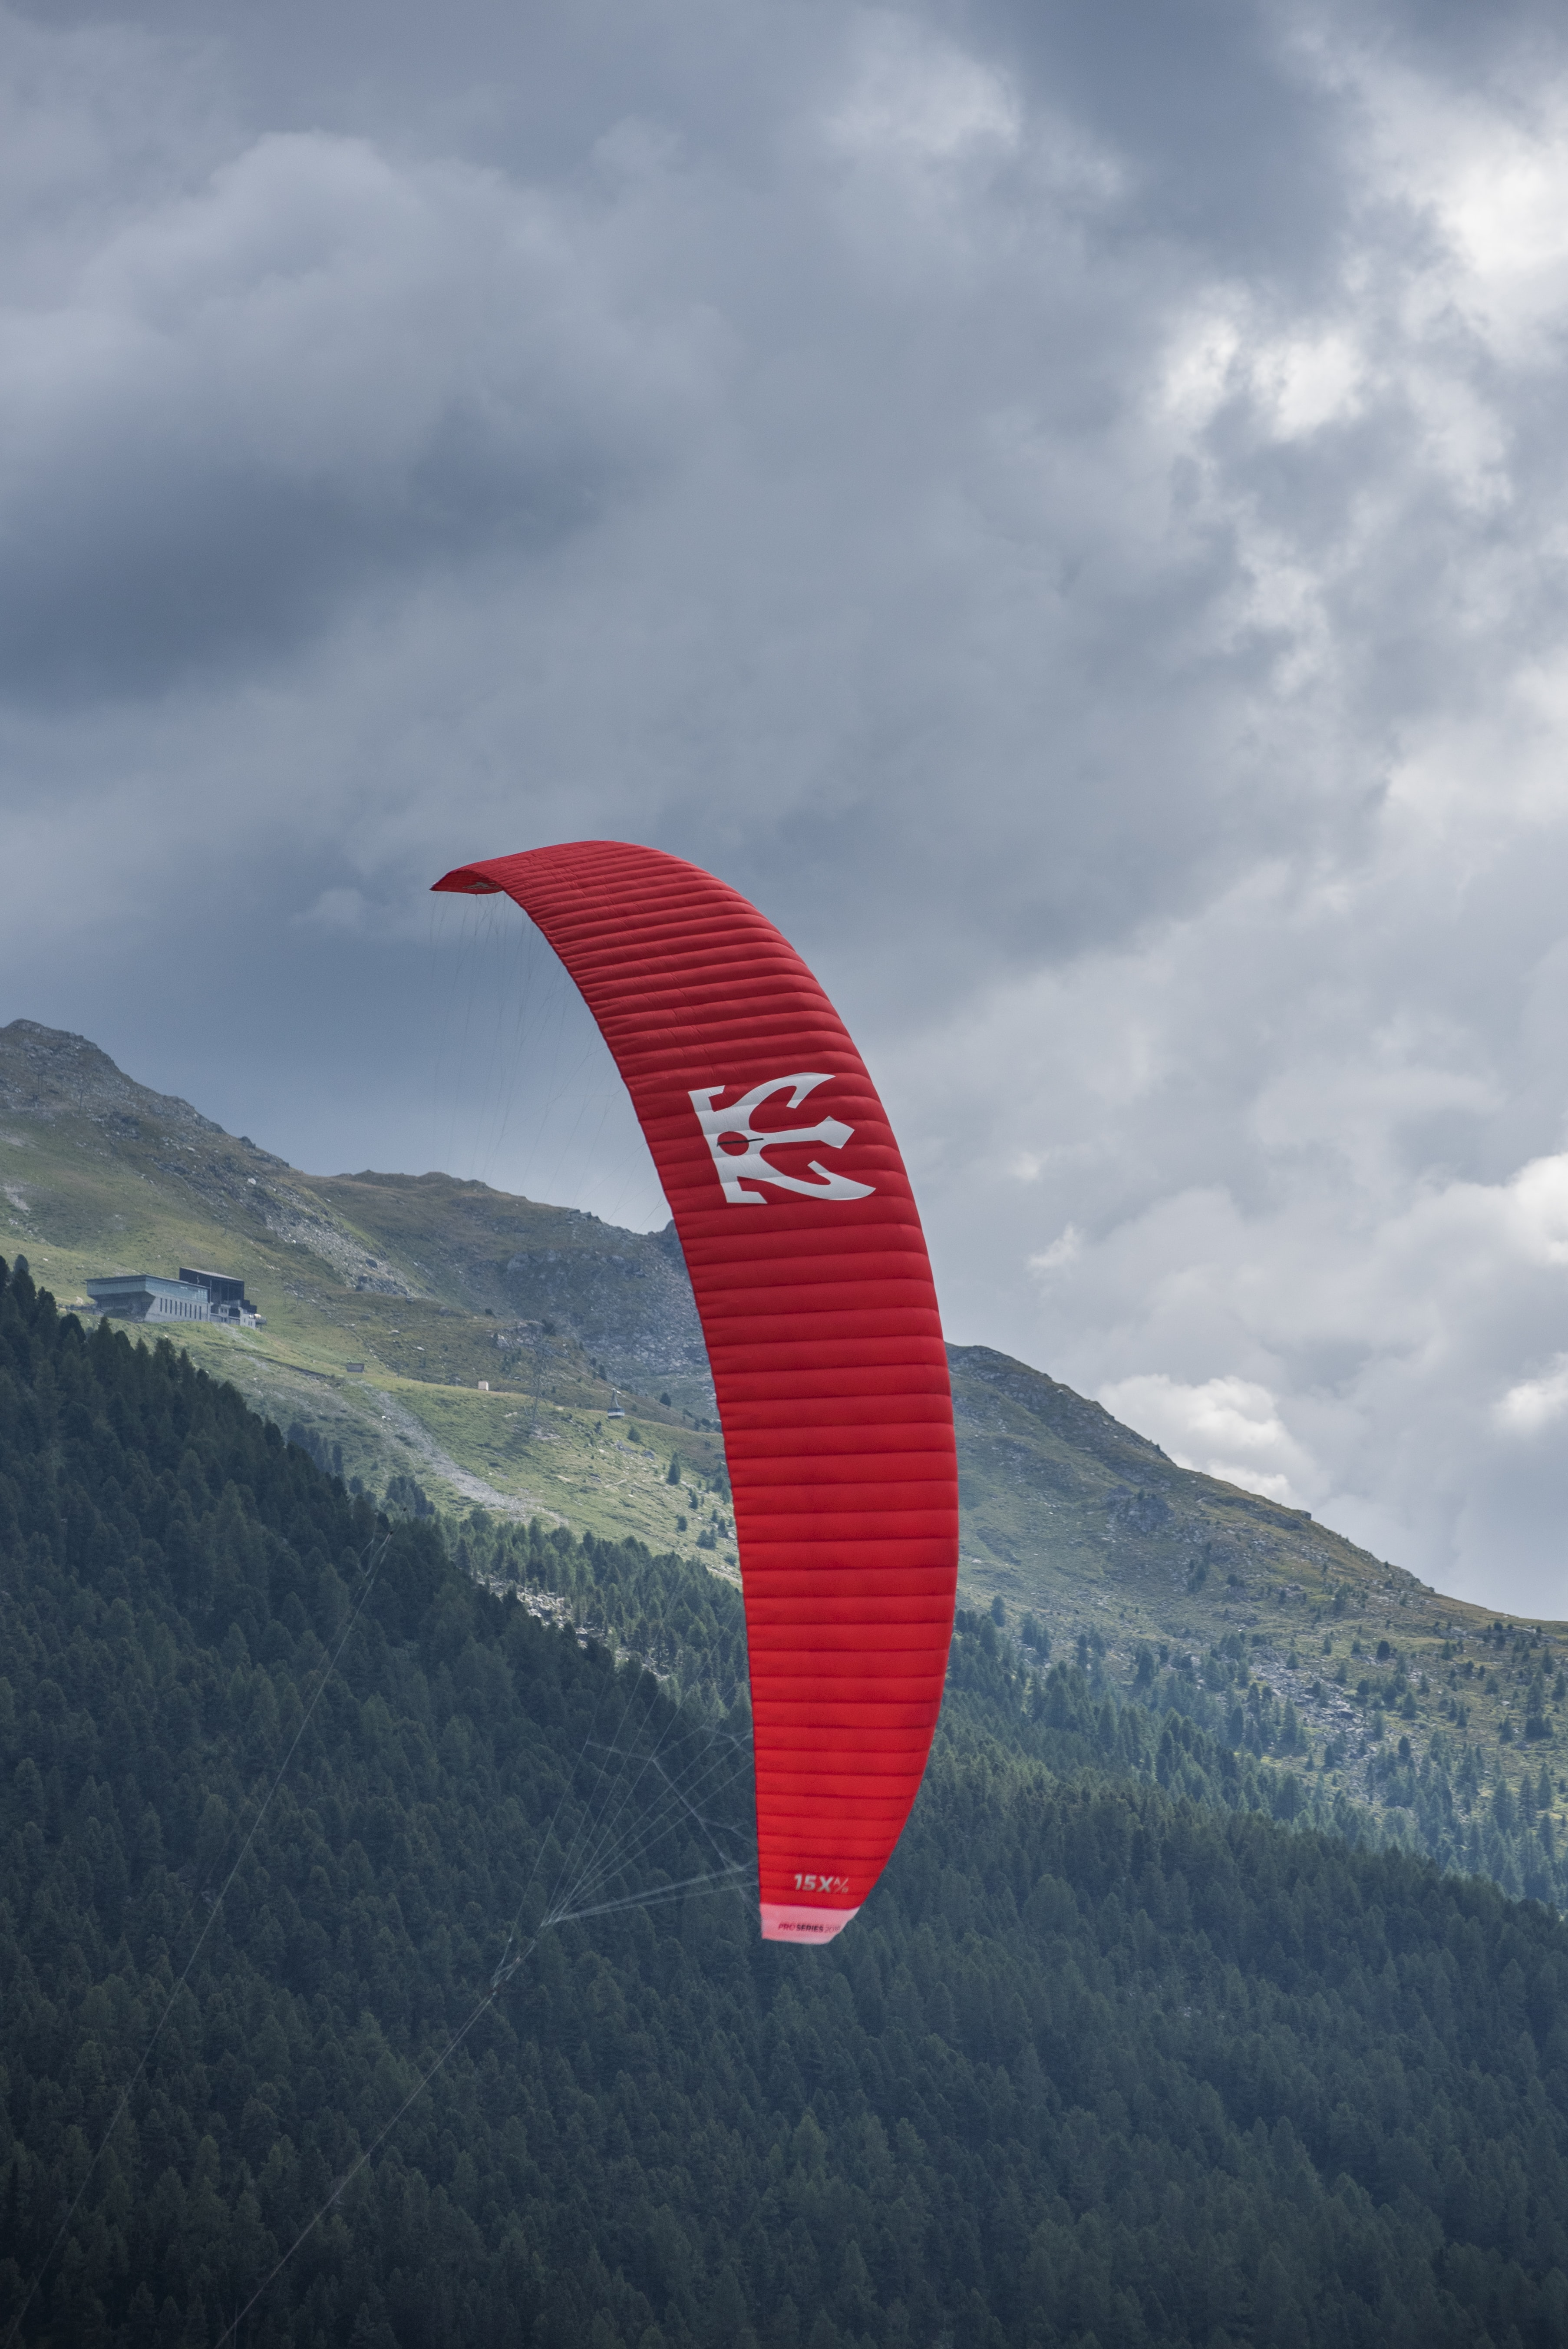 person riding red parachute at daytime